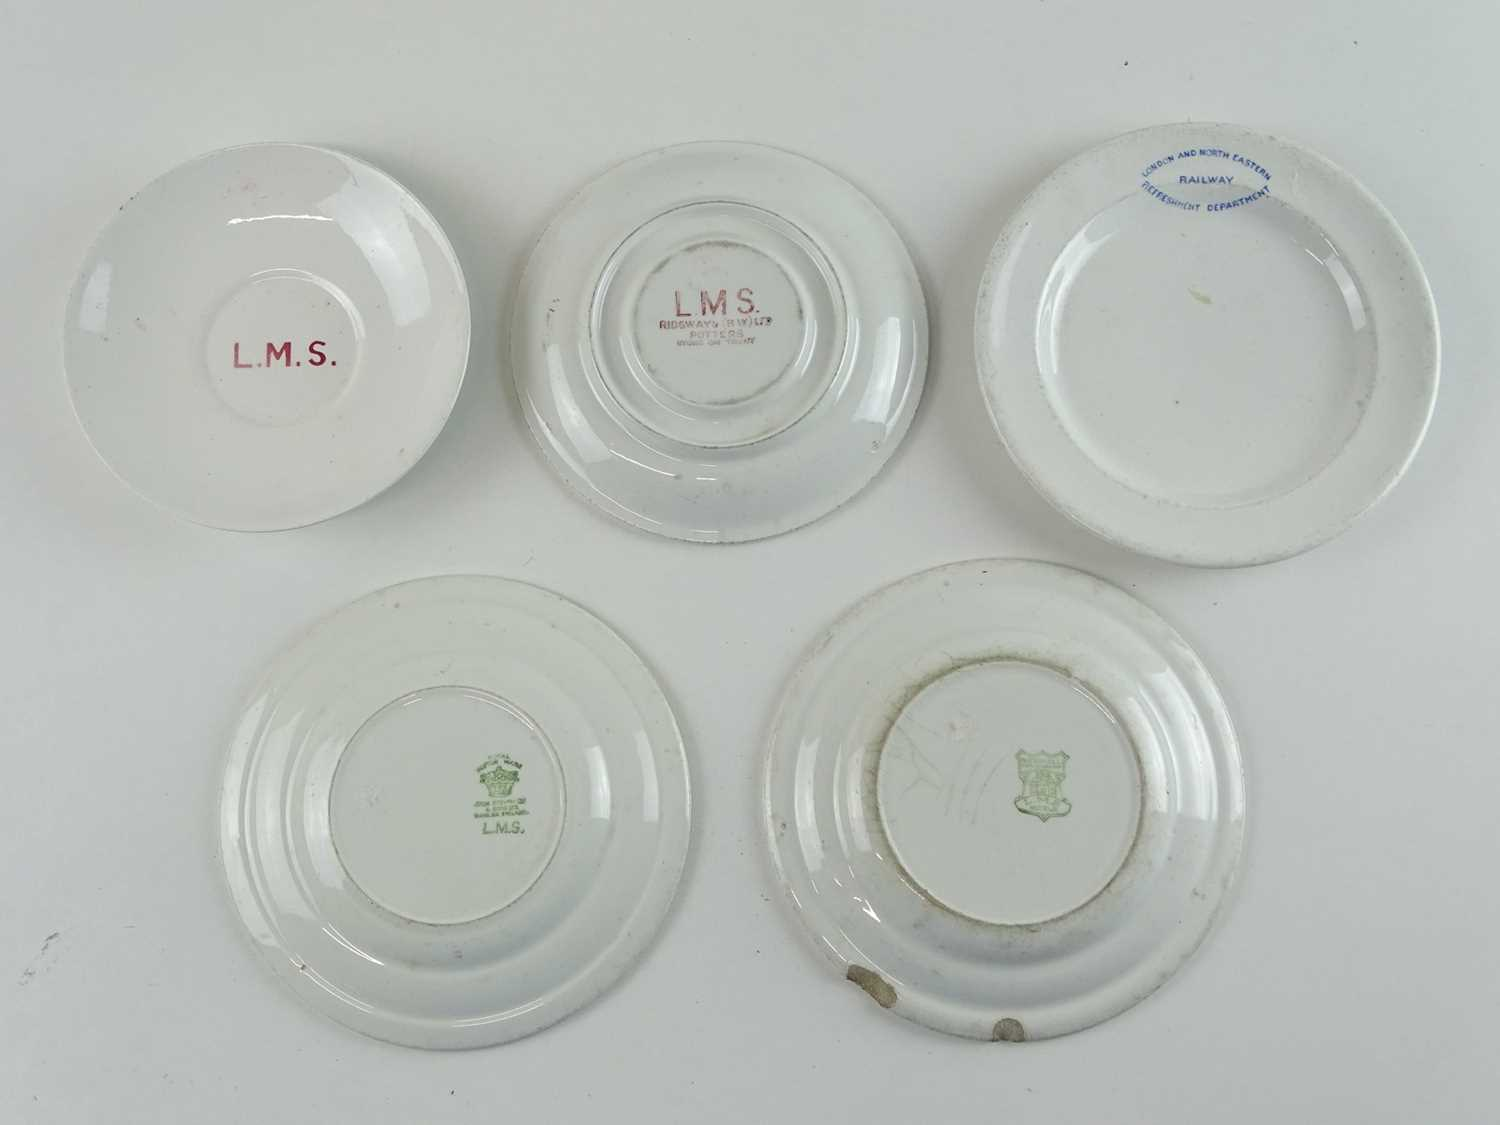 A selection of ceramic railways crockery items for LMS and LNER comprising saucers and plates (5)